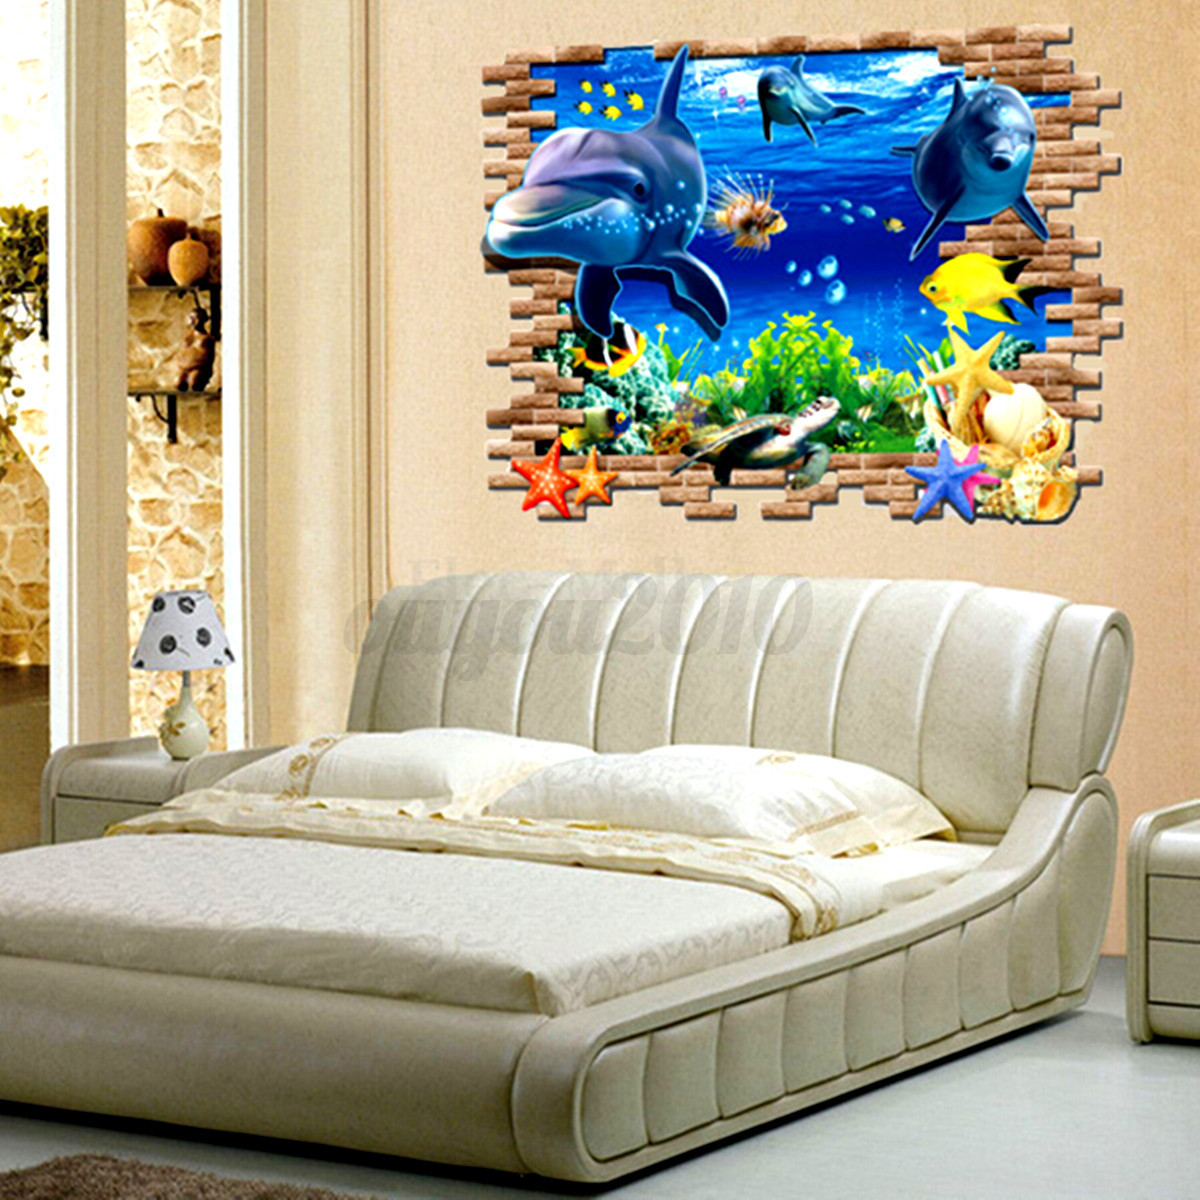 3d fenster wandtattoo sticker aufkleber stern spiegel meer decke wohnzimmer deko ebay. Black Bedroom Furniture Sets. Home Design Ideas